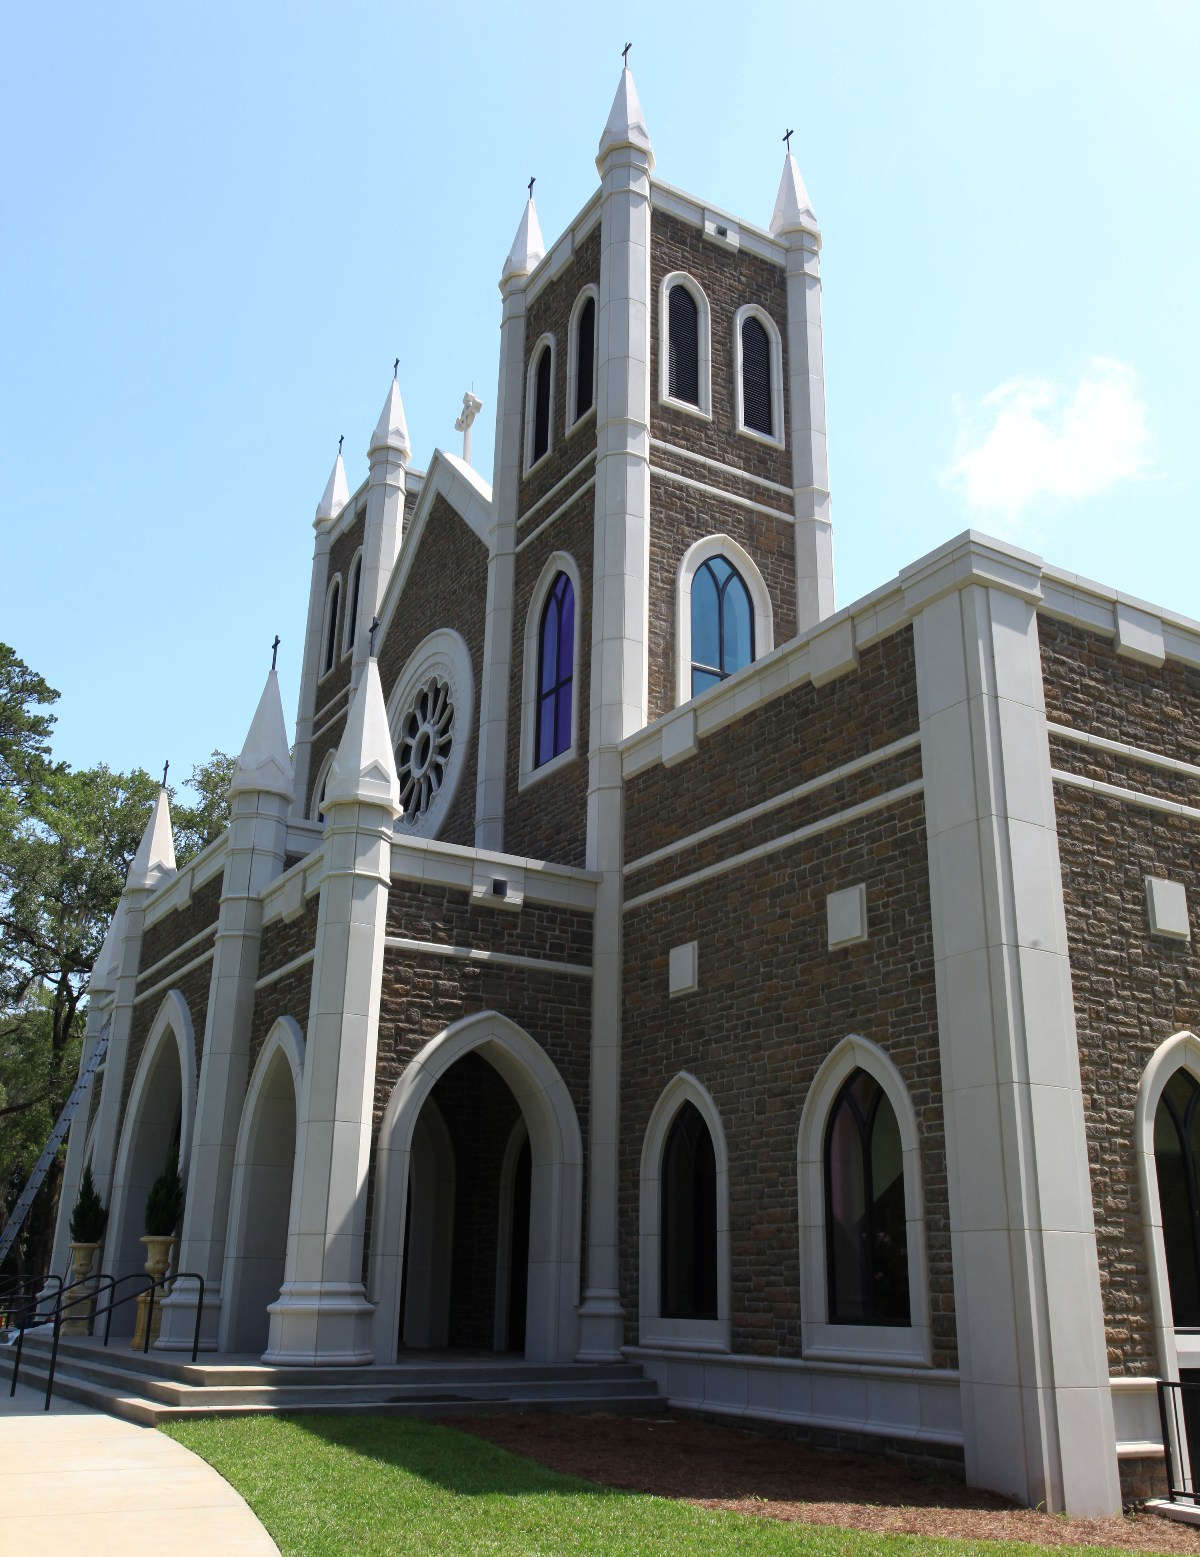 St Peters Anglican Church | Cladding using Architectural Cast Stone, Precast Concrete, Architectural GFRC with Seamless Color Matching